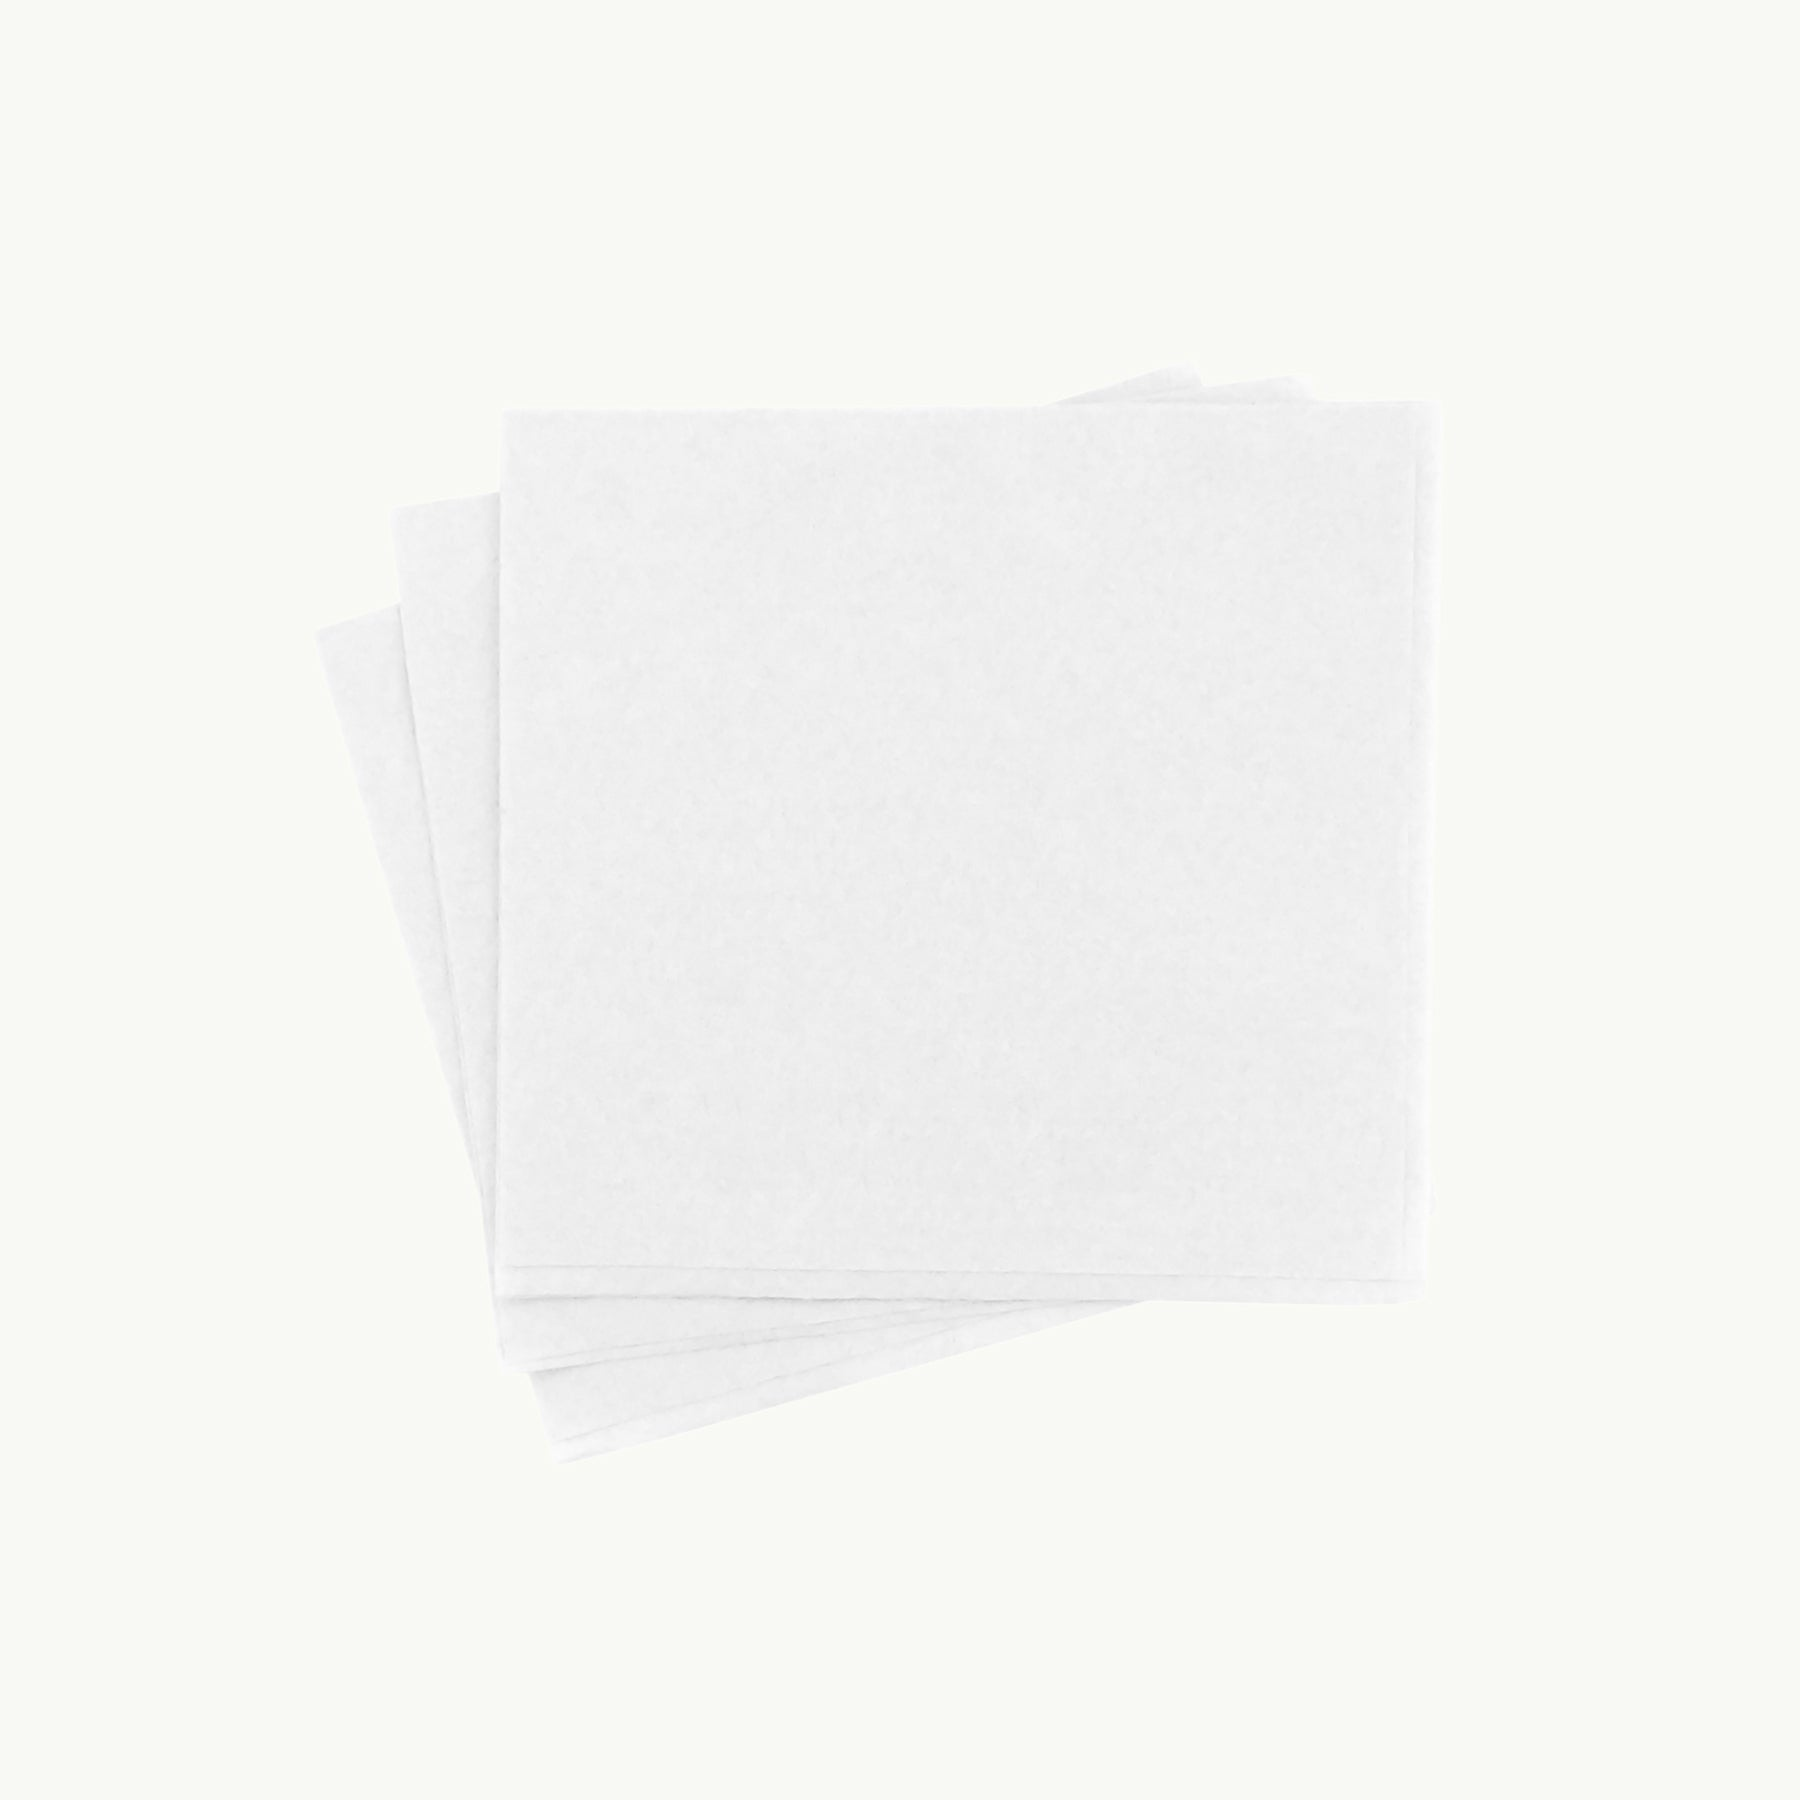 Eco Napkin - 4 Fold Lunch - White - FSC MIX